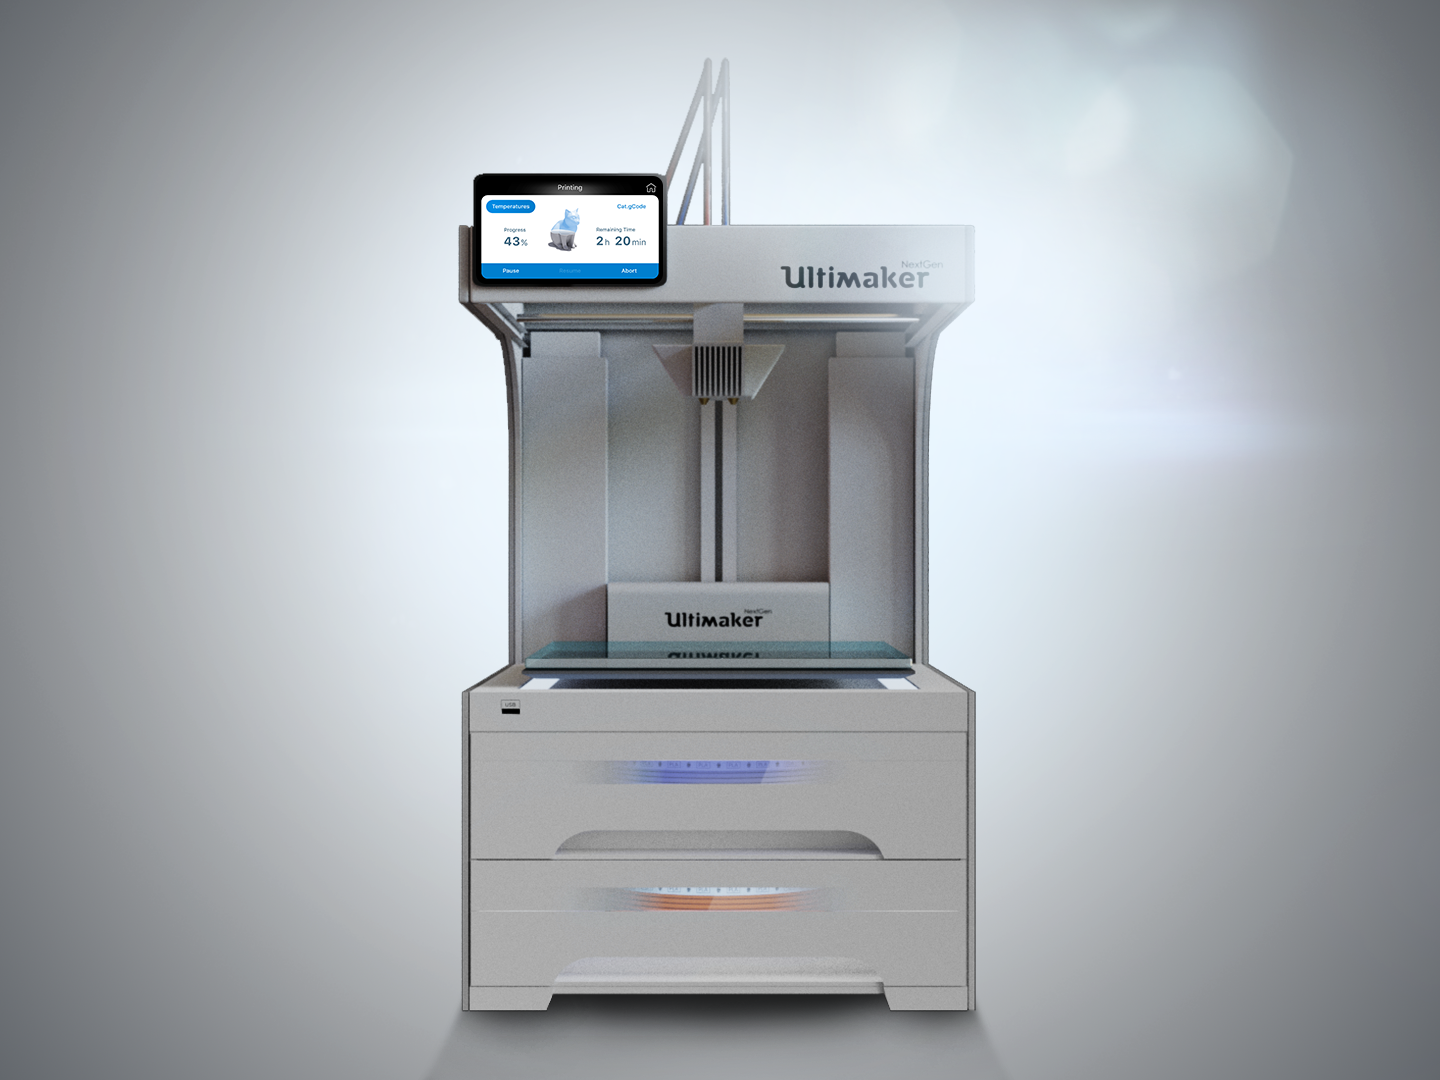 Ultimaker NextGen 3D Printer touchscreen ui 3dprinter nextgen ultimaker